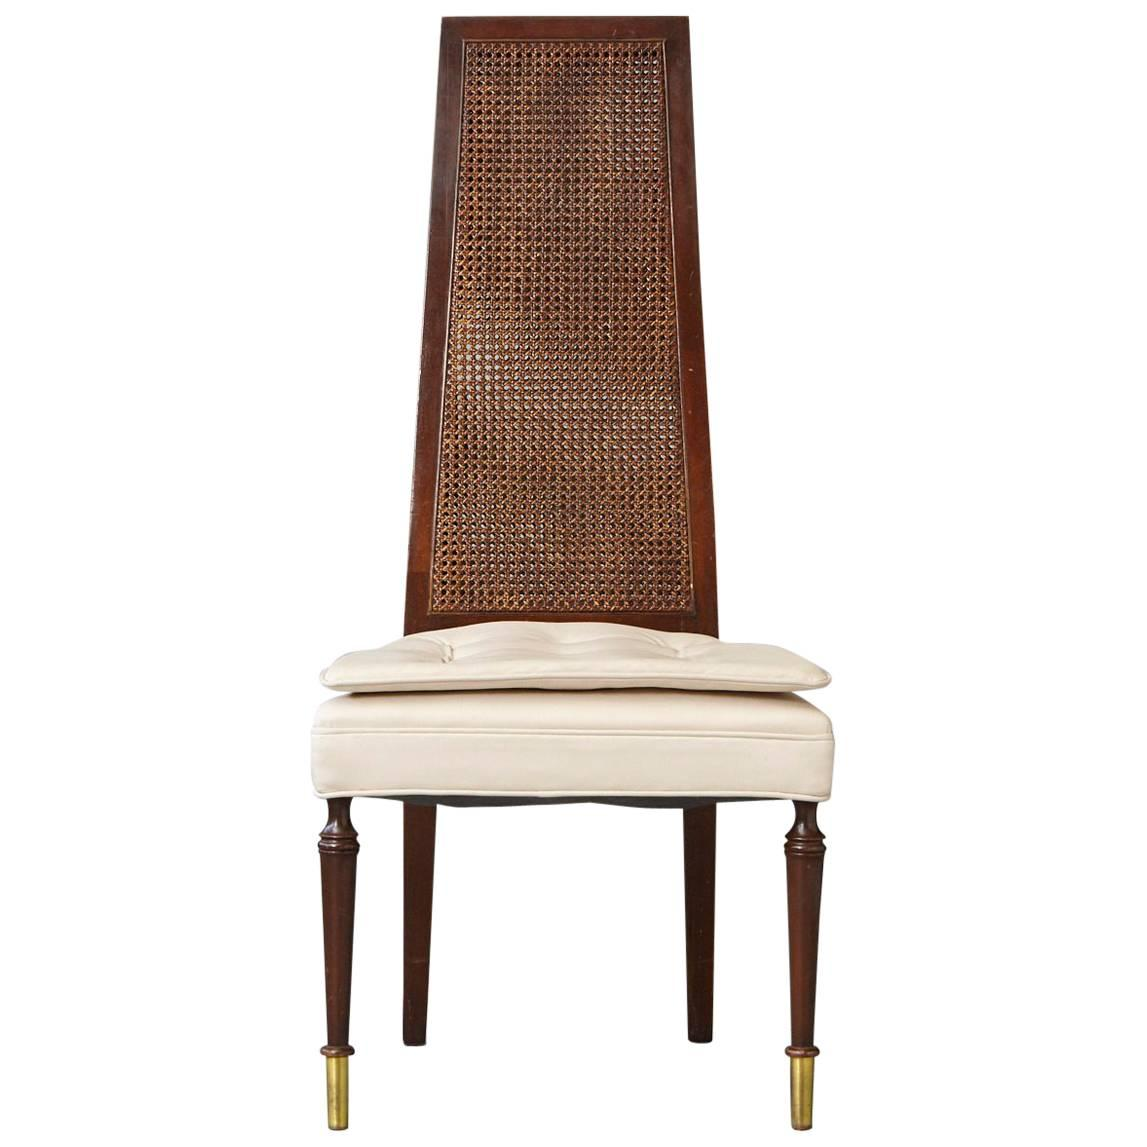 Merveilleux High Back Desk Chair With Double Sided Rattan Back And Beige Faux Leather  Seat For